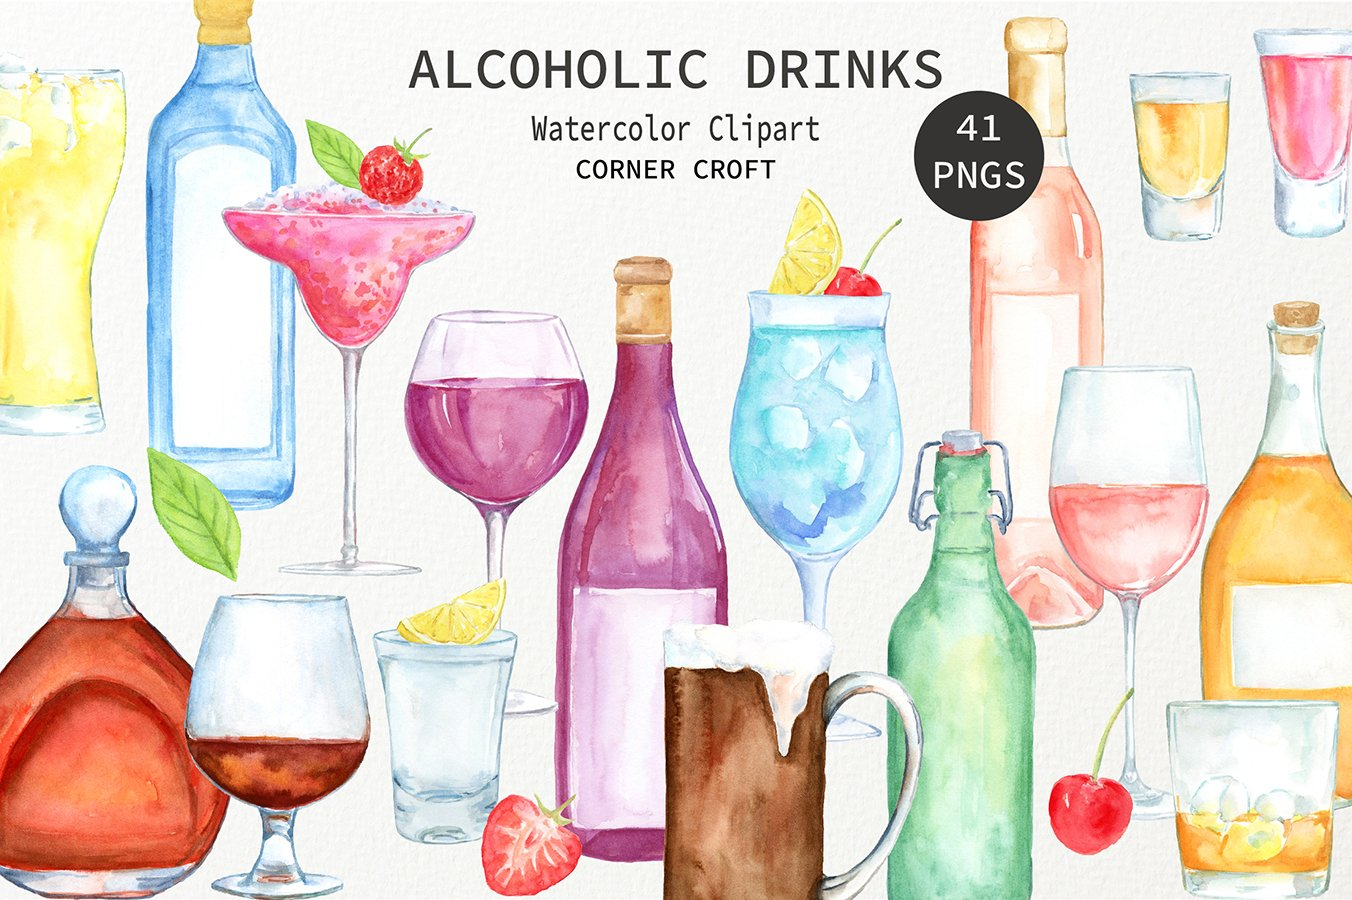 Watercolour alcoholic drinks clipart, alcohol drink, beer, wine and liquor  instant download.